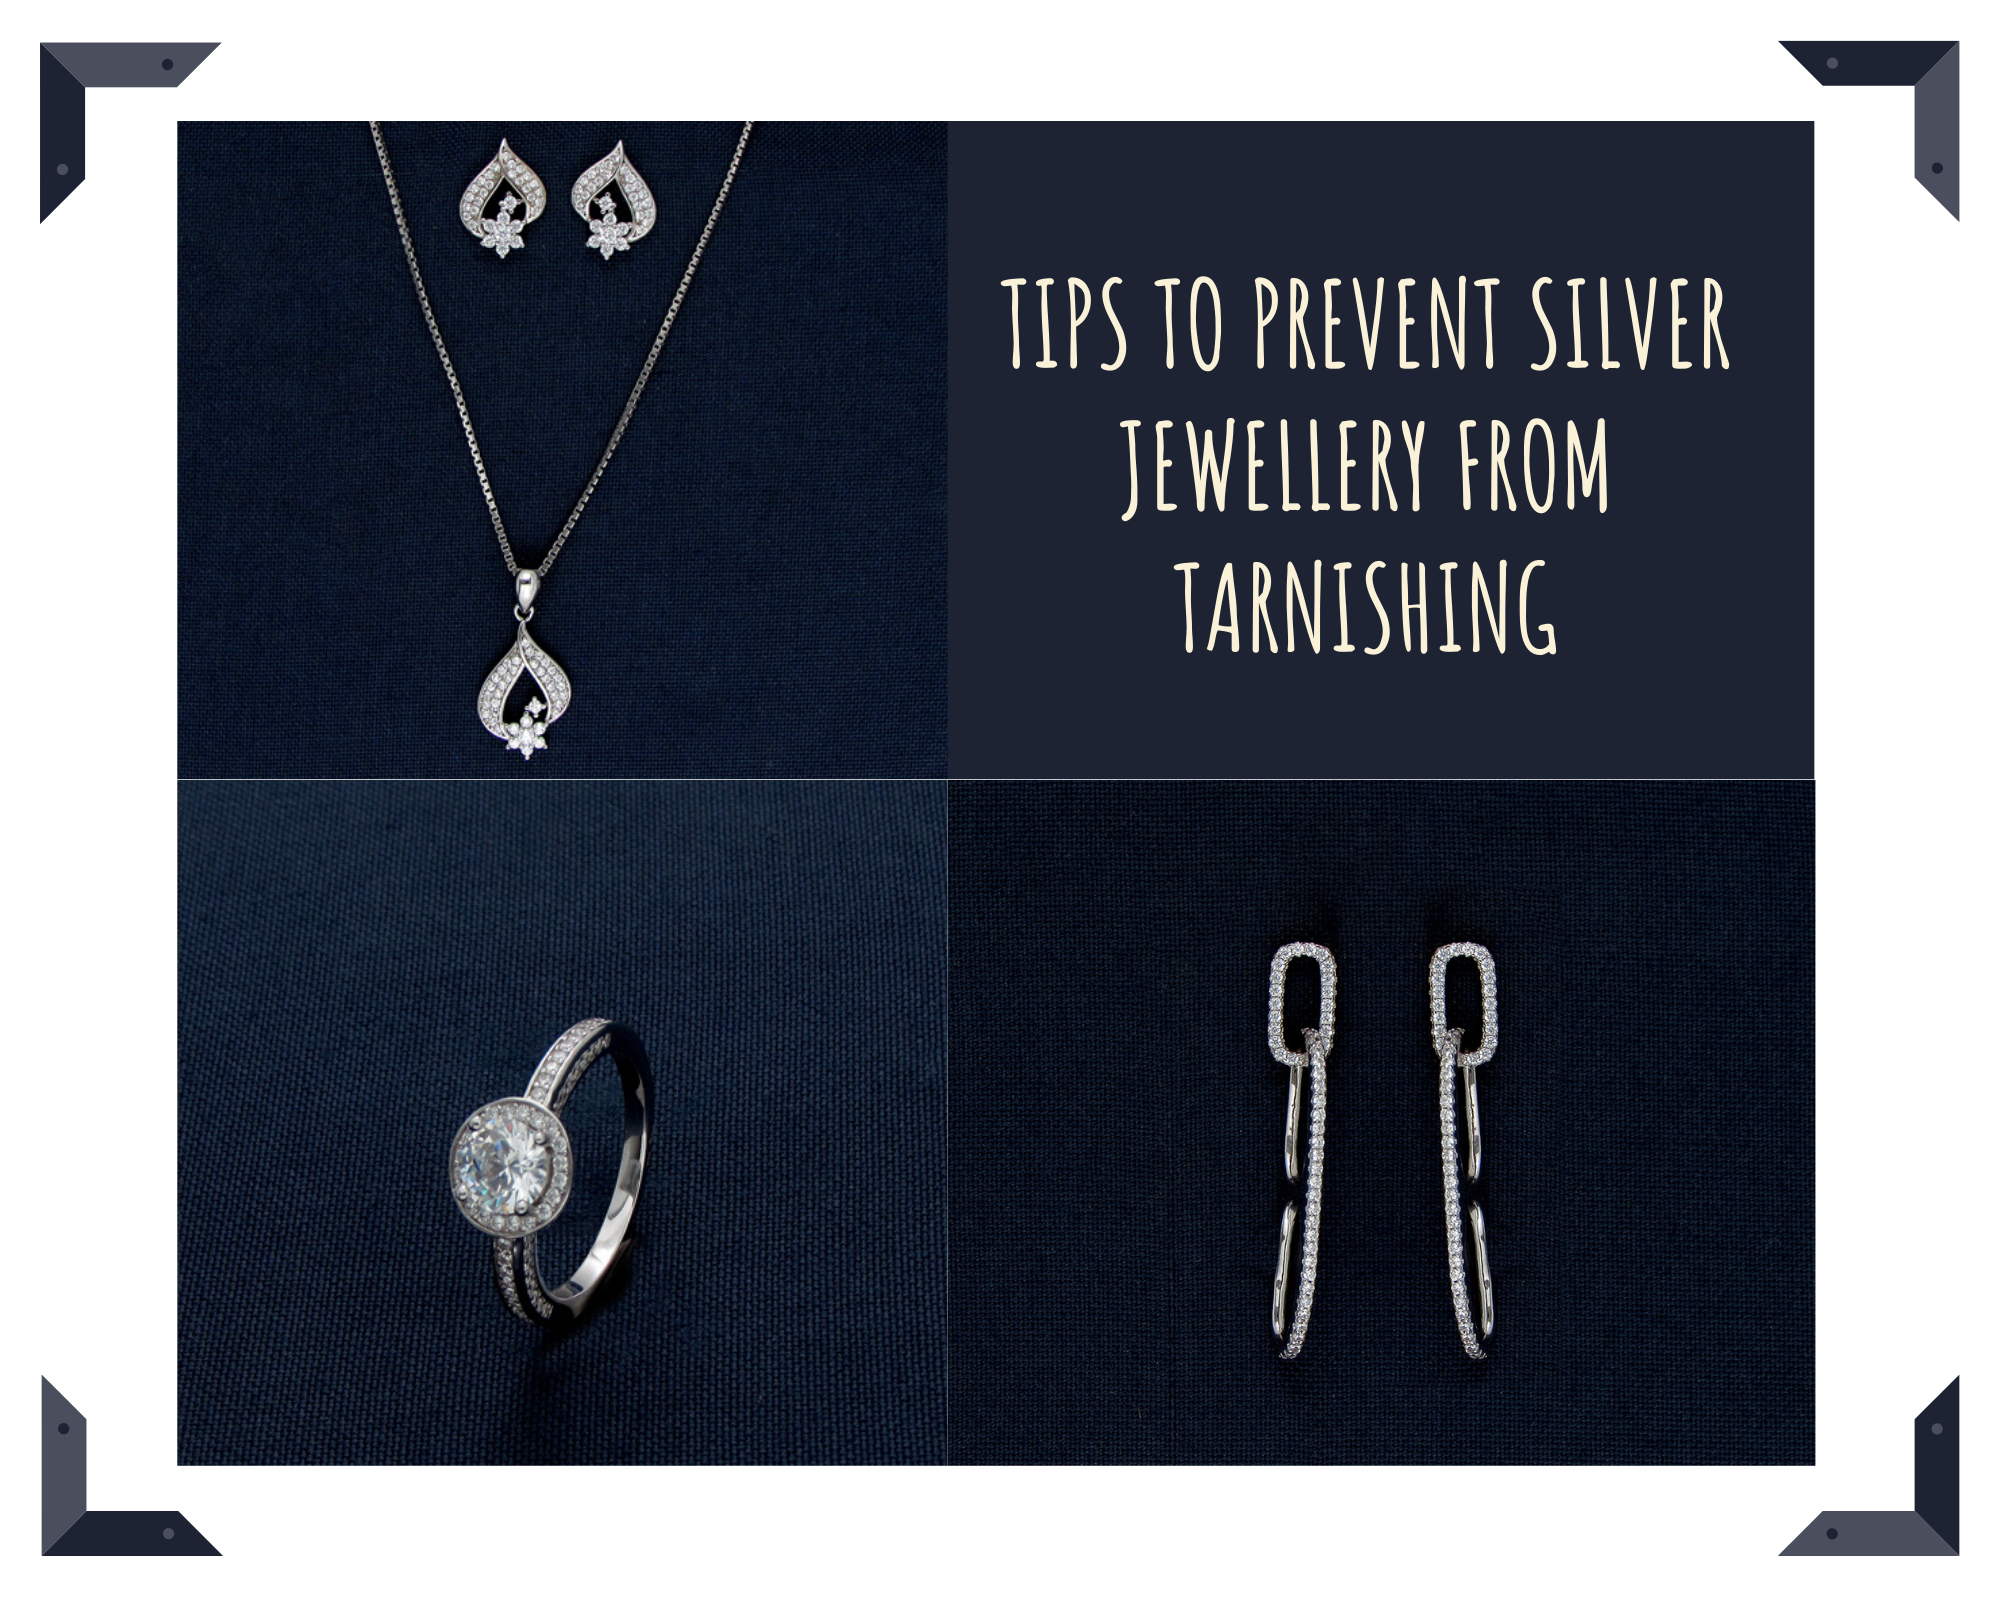 Tips to Prevent Silver Jewellery from Tarnishing